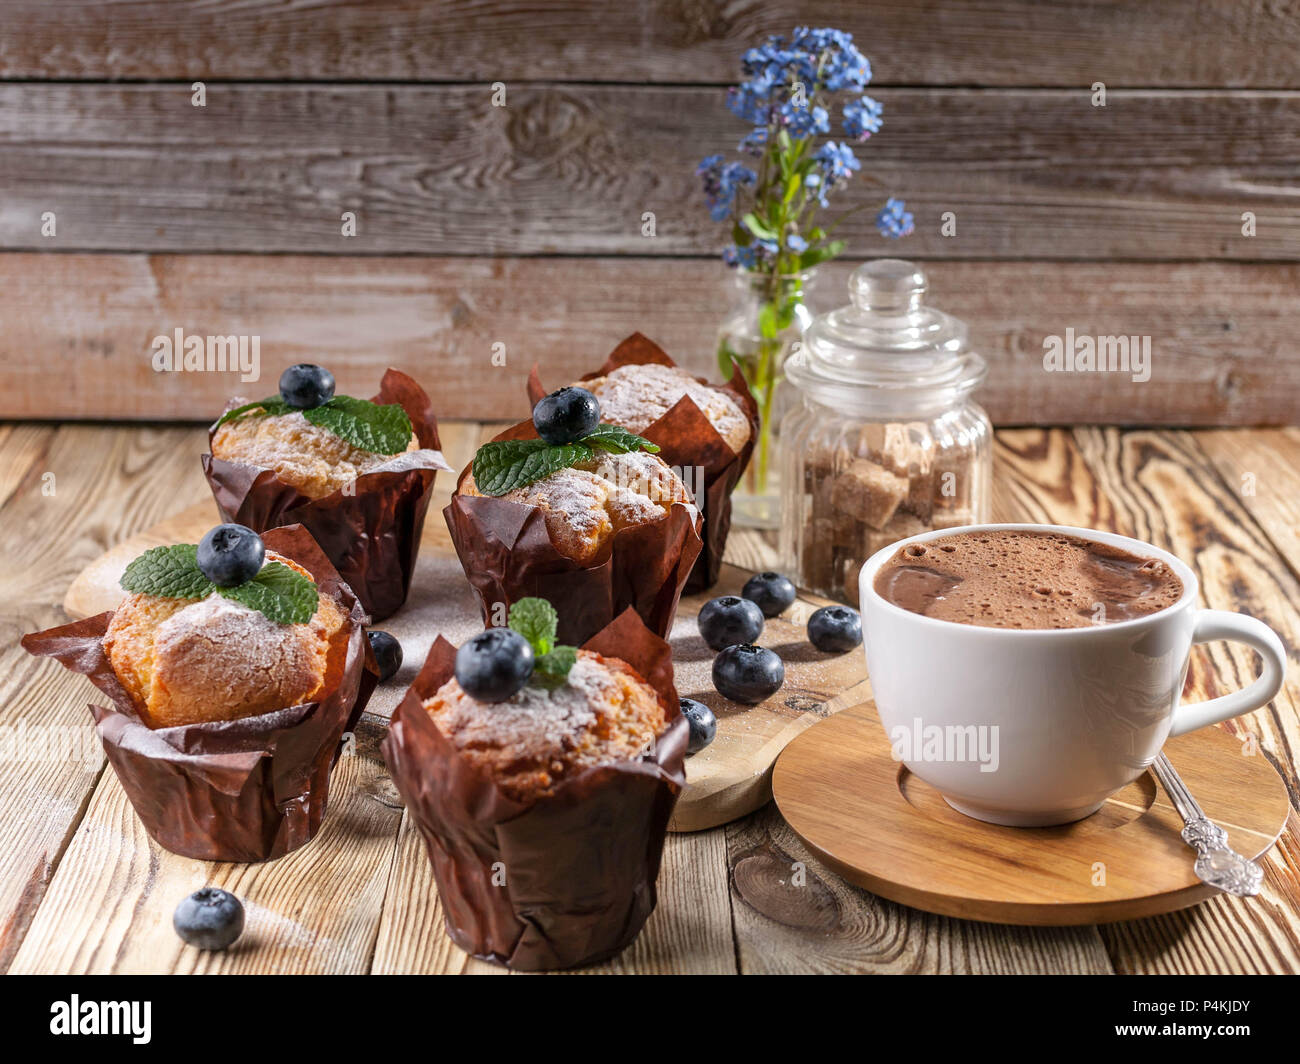 Muffins with blueberries and a cup of hot chocolate on a wooden background. homemade baking - Stock Image